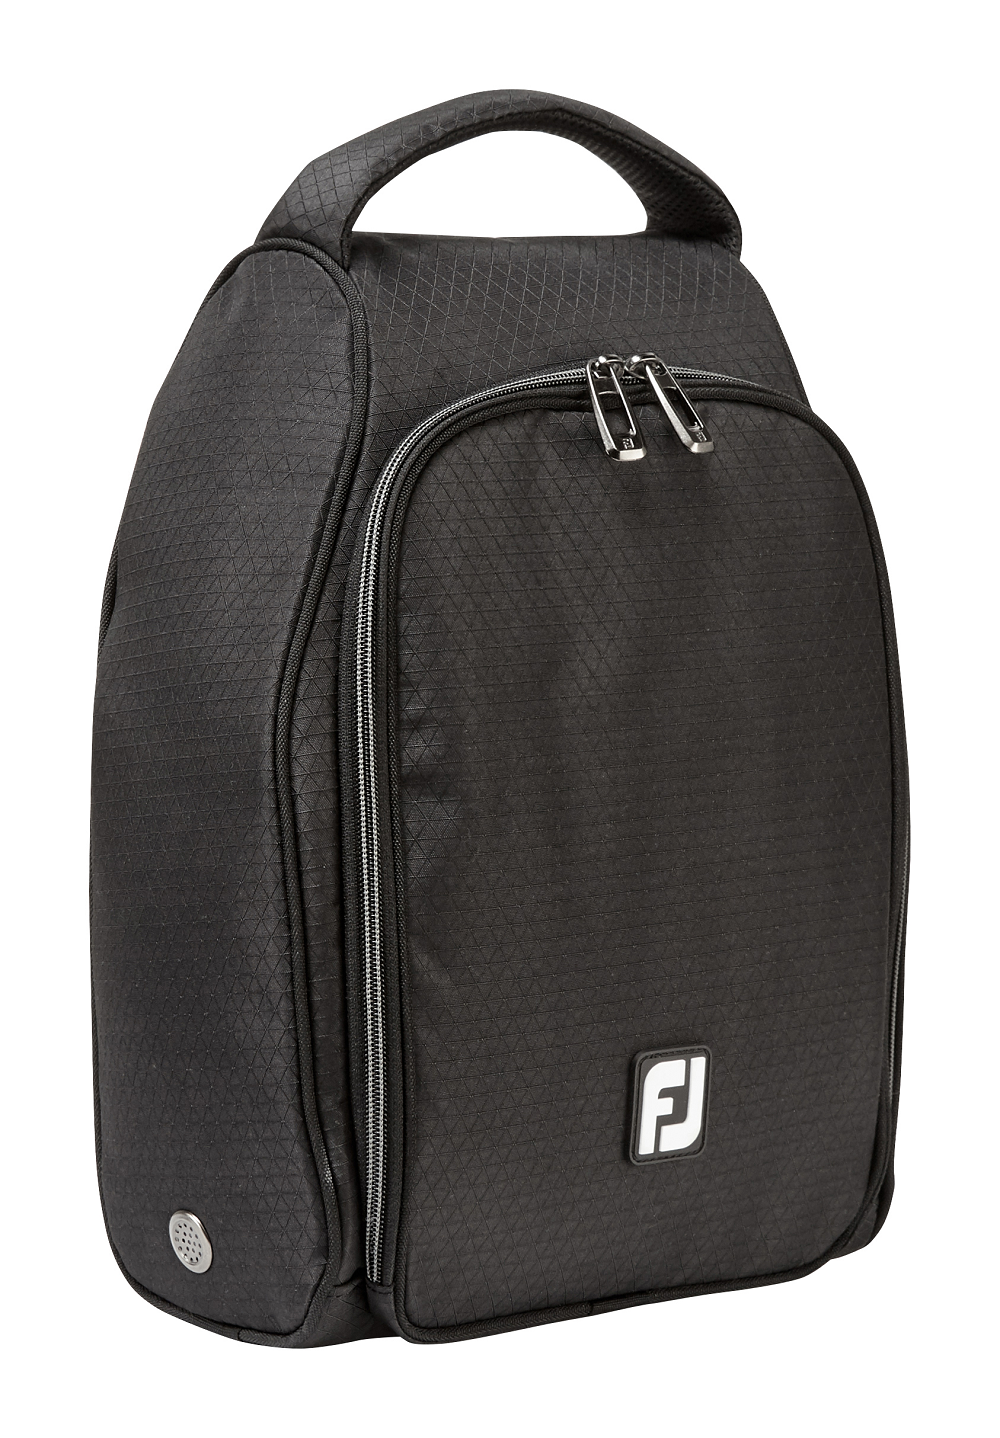 Skótaska FJ SHOE BAG